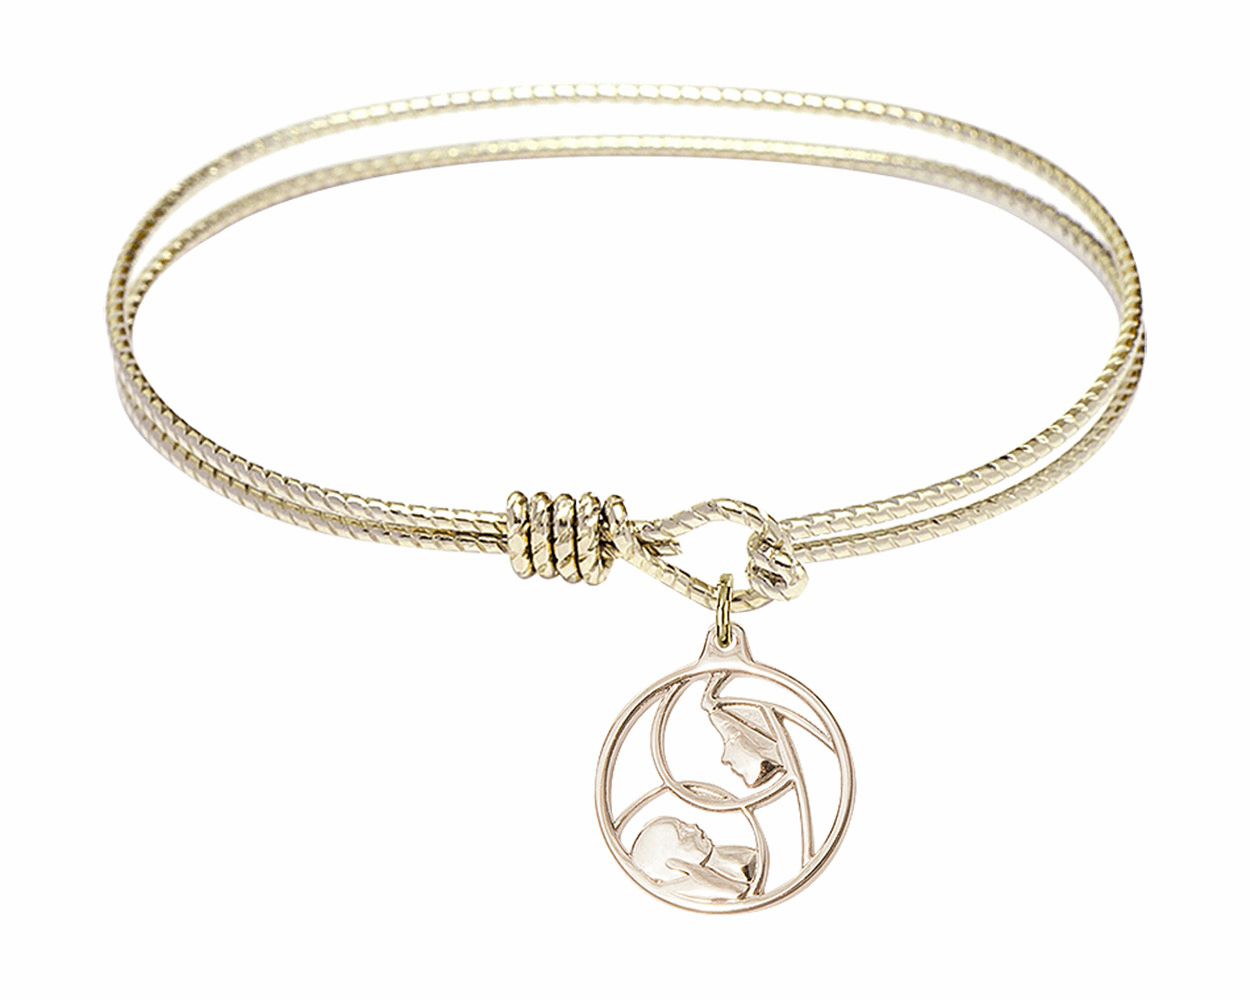 Round Twist Eye Hook Bangle Bracelet w/Madonna and Child Charm by Bliss Mfg